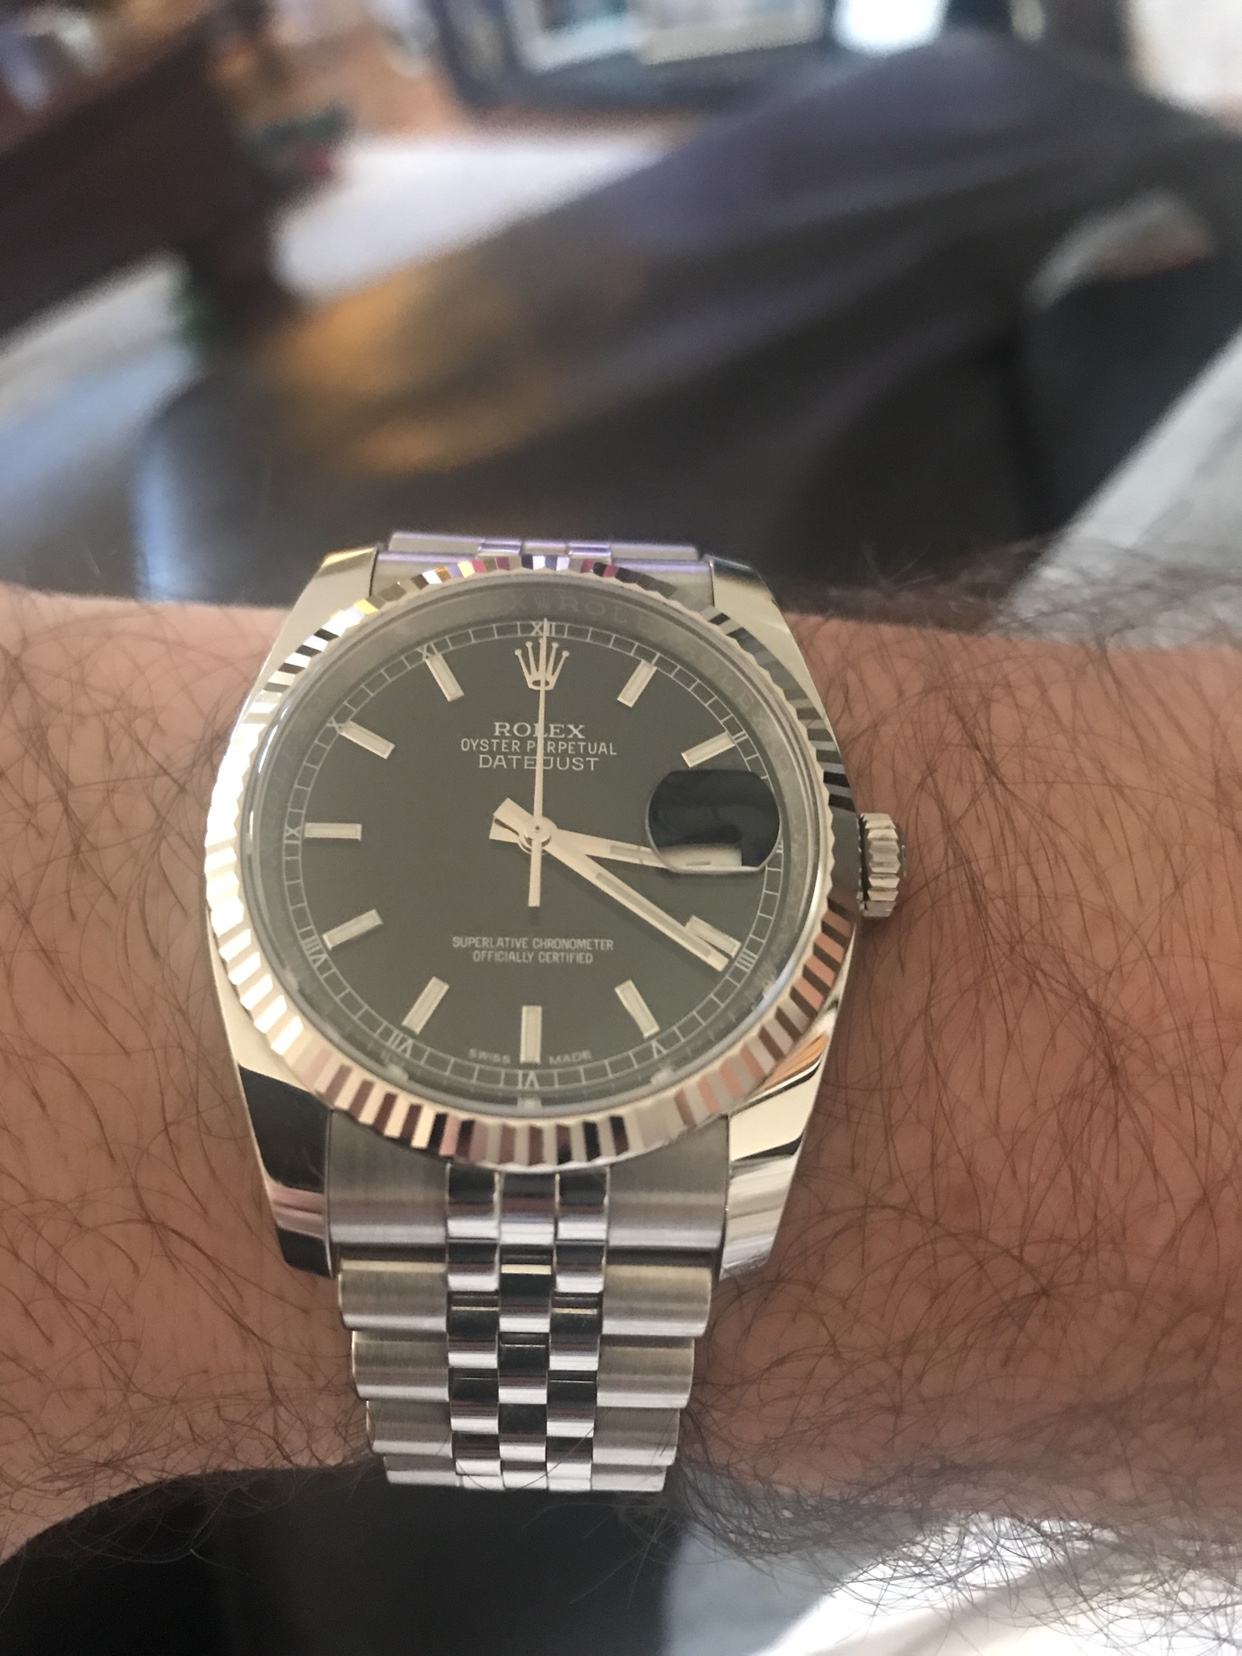 Leather Band for DJ - Rolex Forums - Rolex Watch Forum